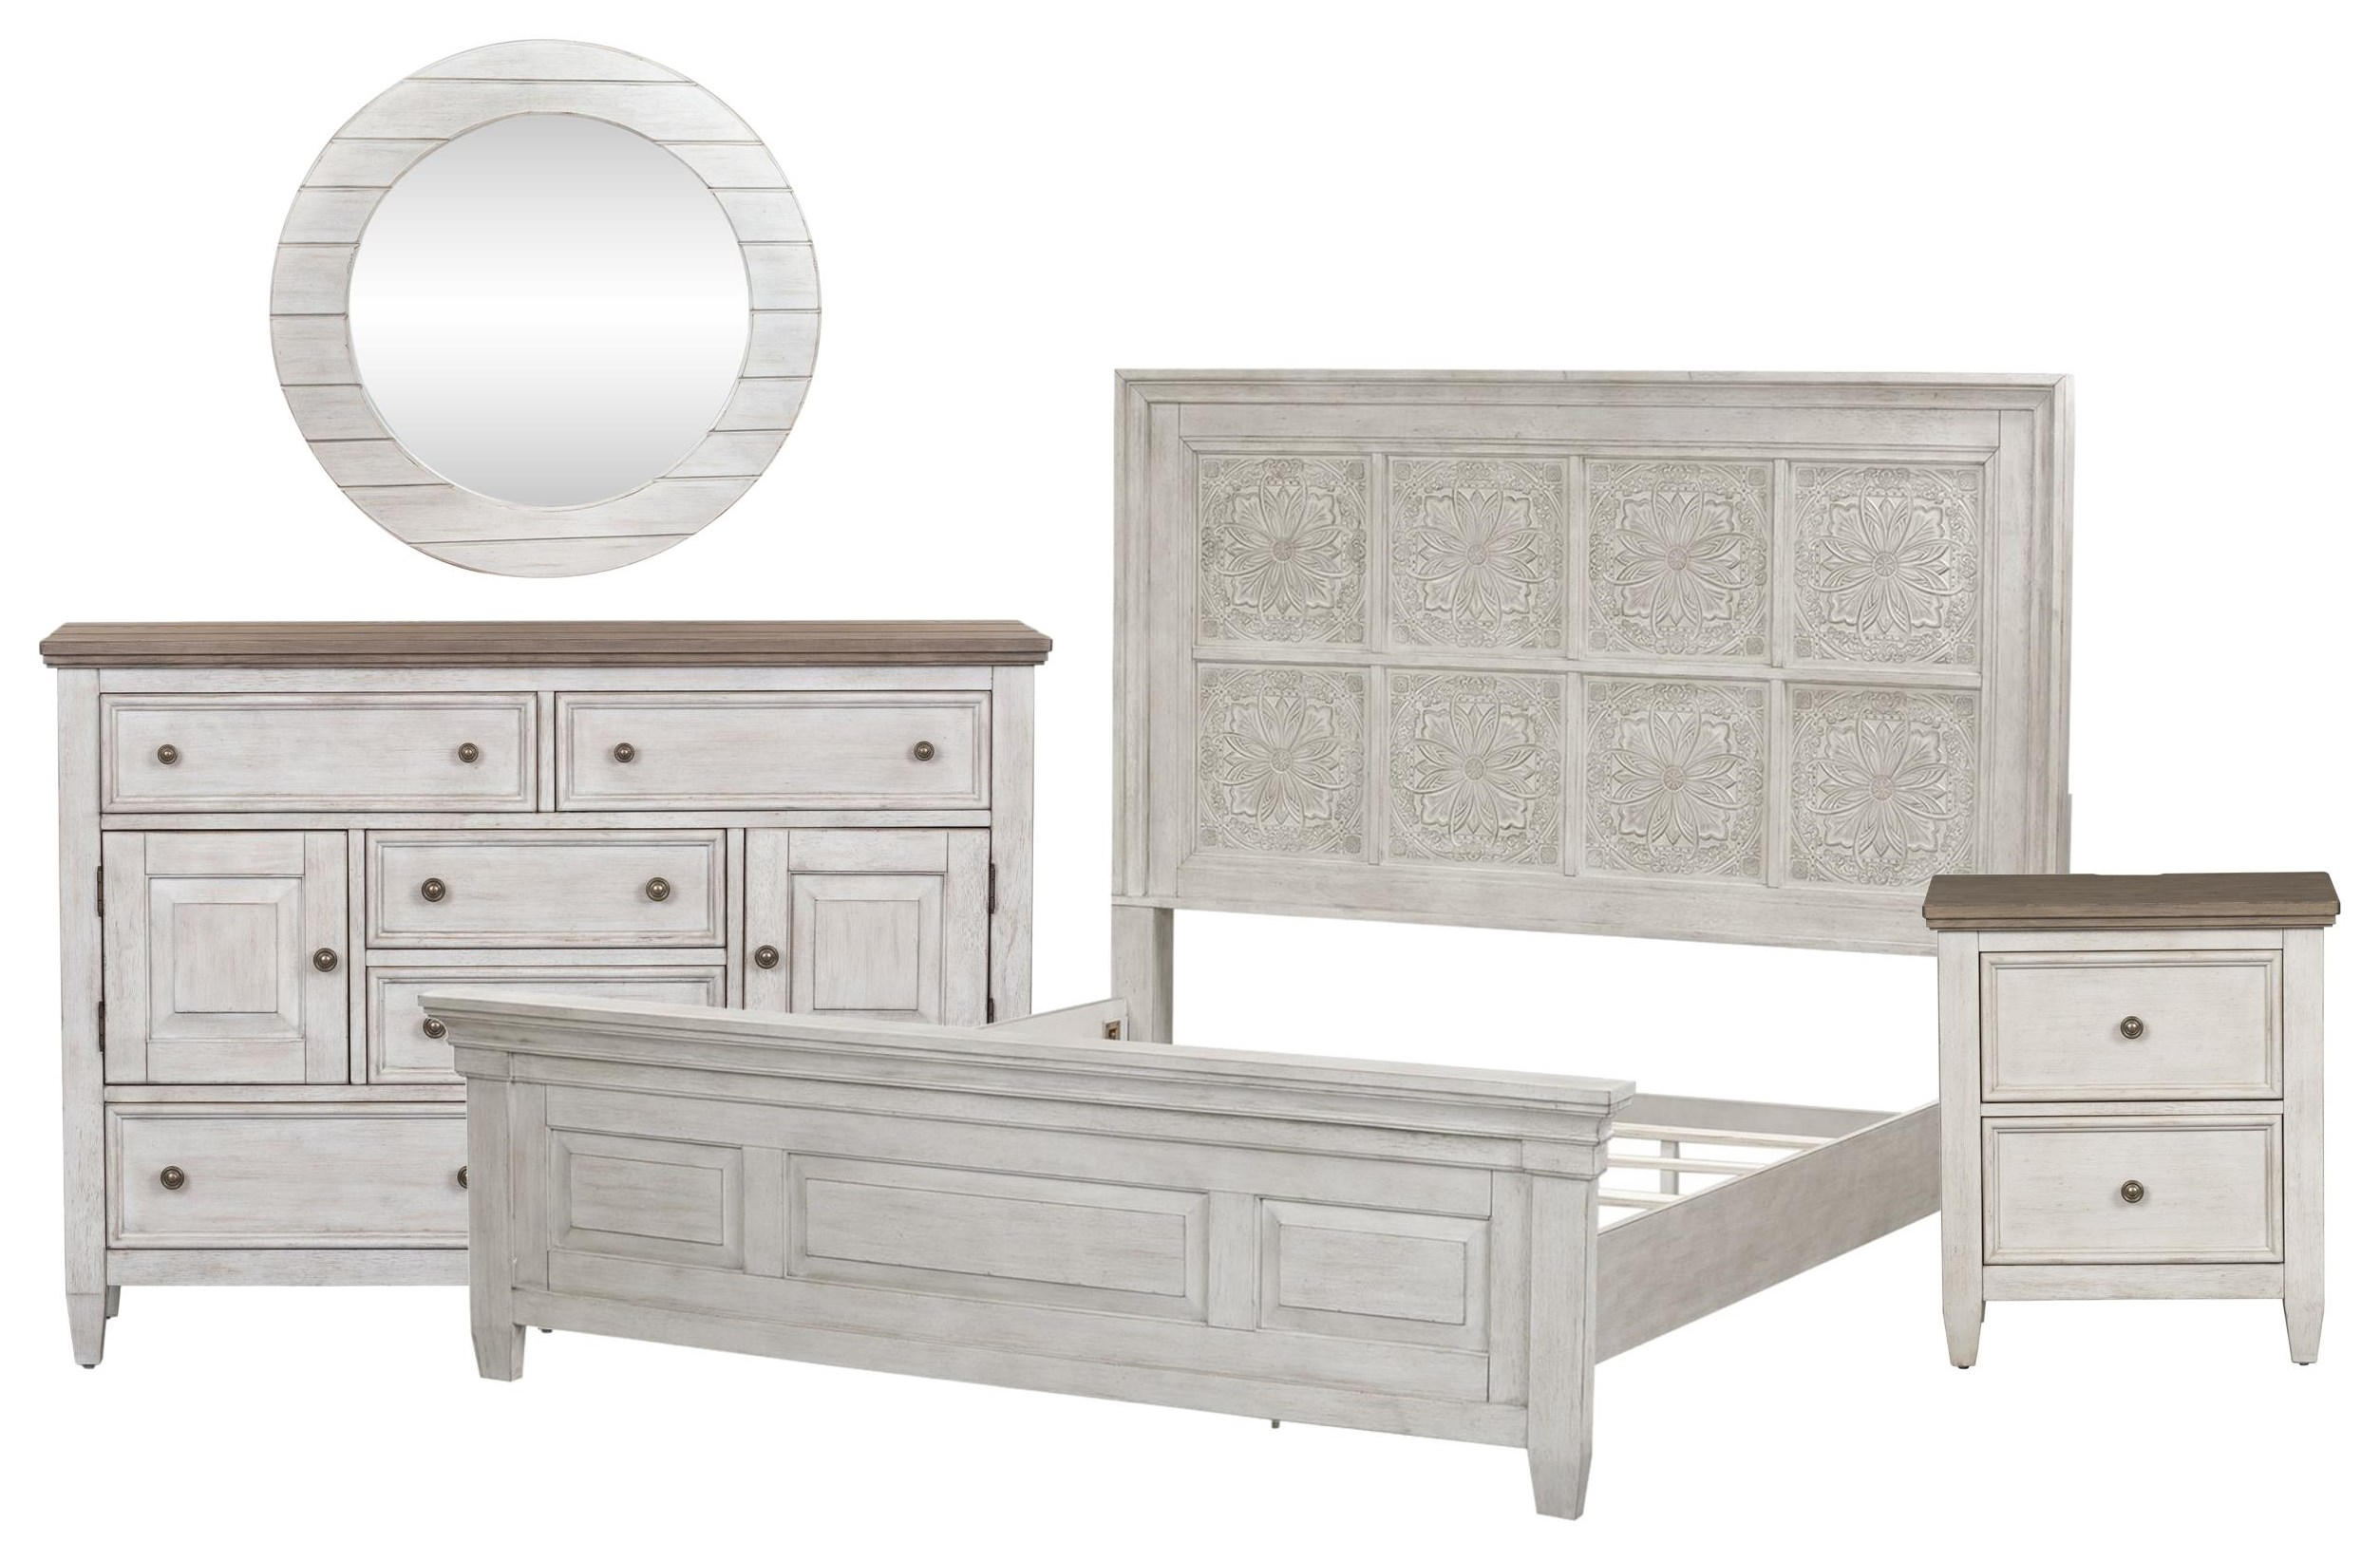 Heartland King Panel Bed, Chesser, Mirror, Nightstand by Liberty Furniture at Johnny Janosik